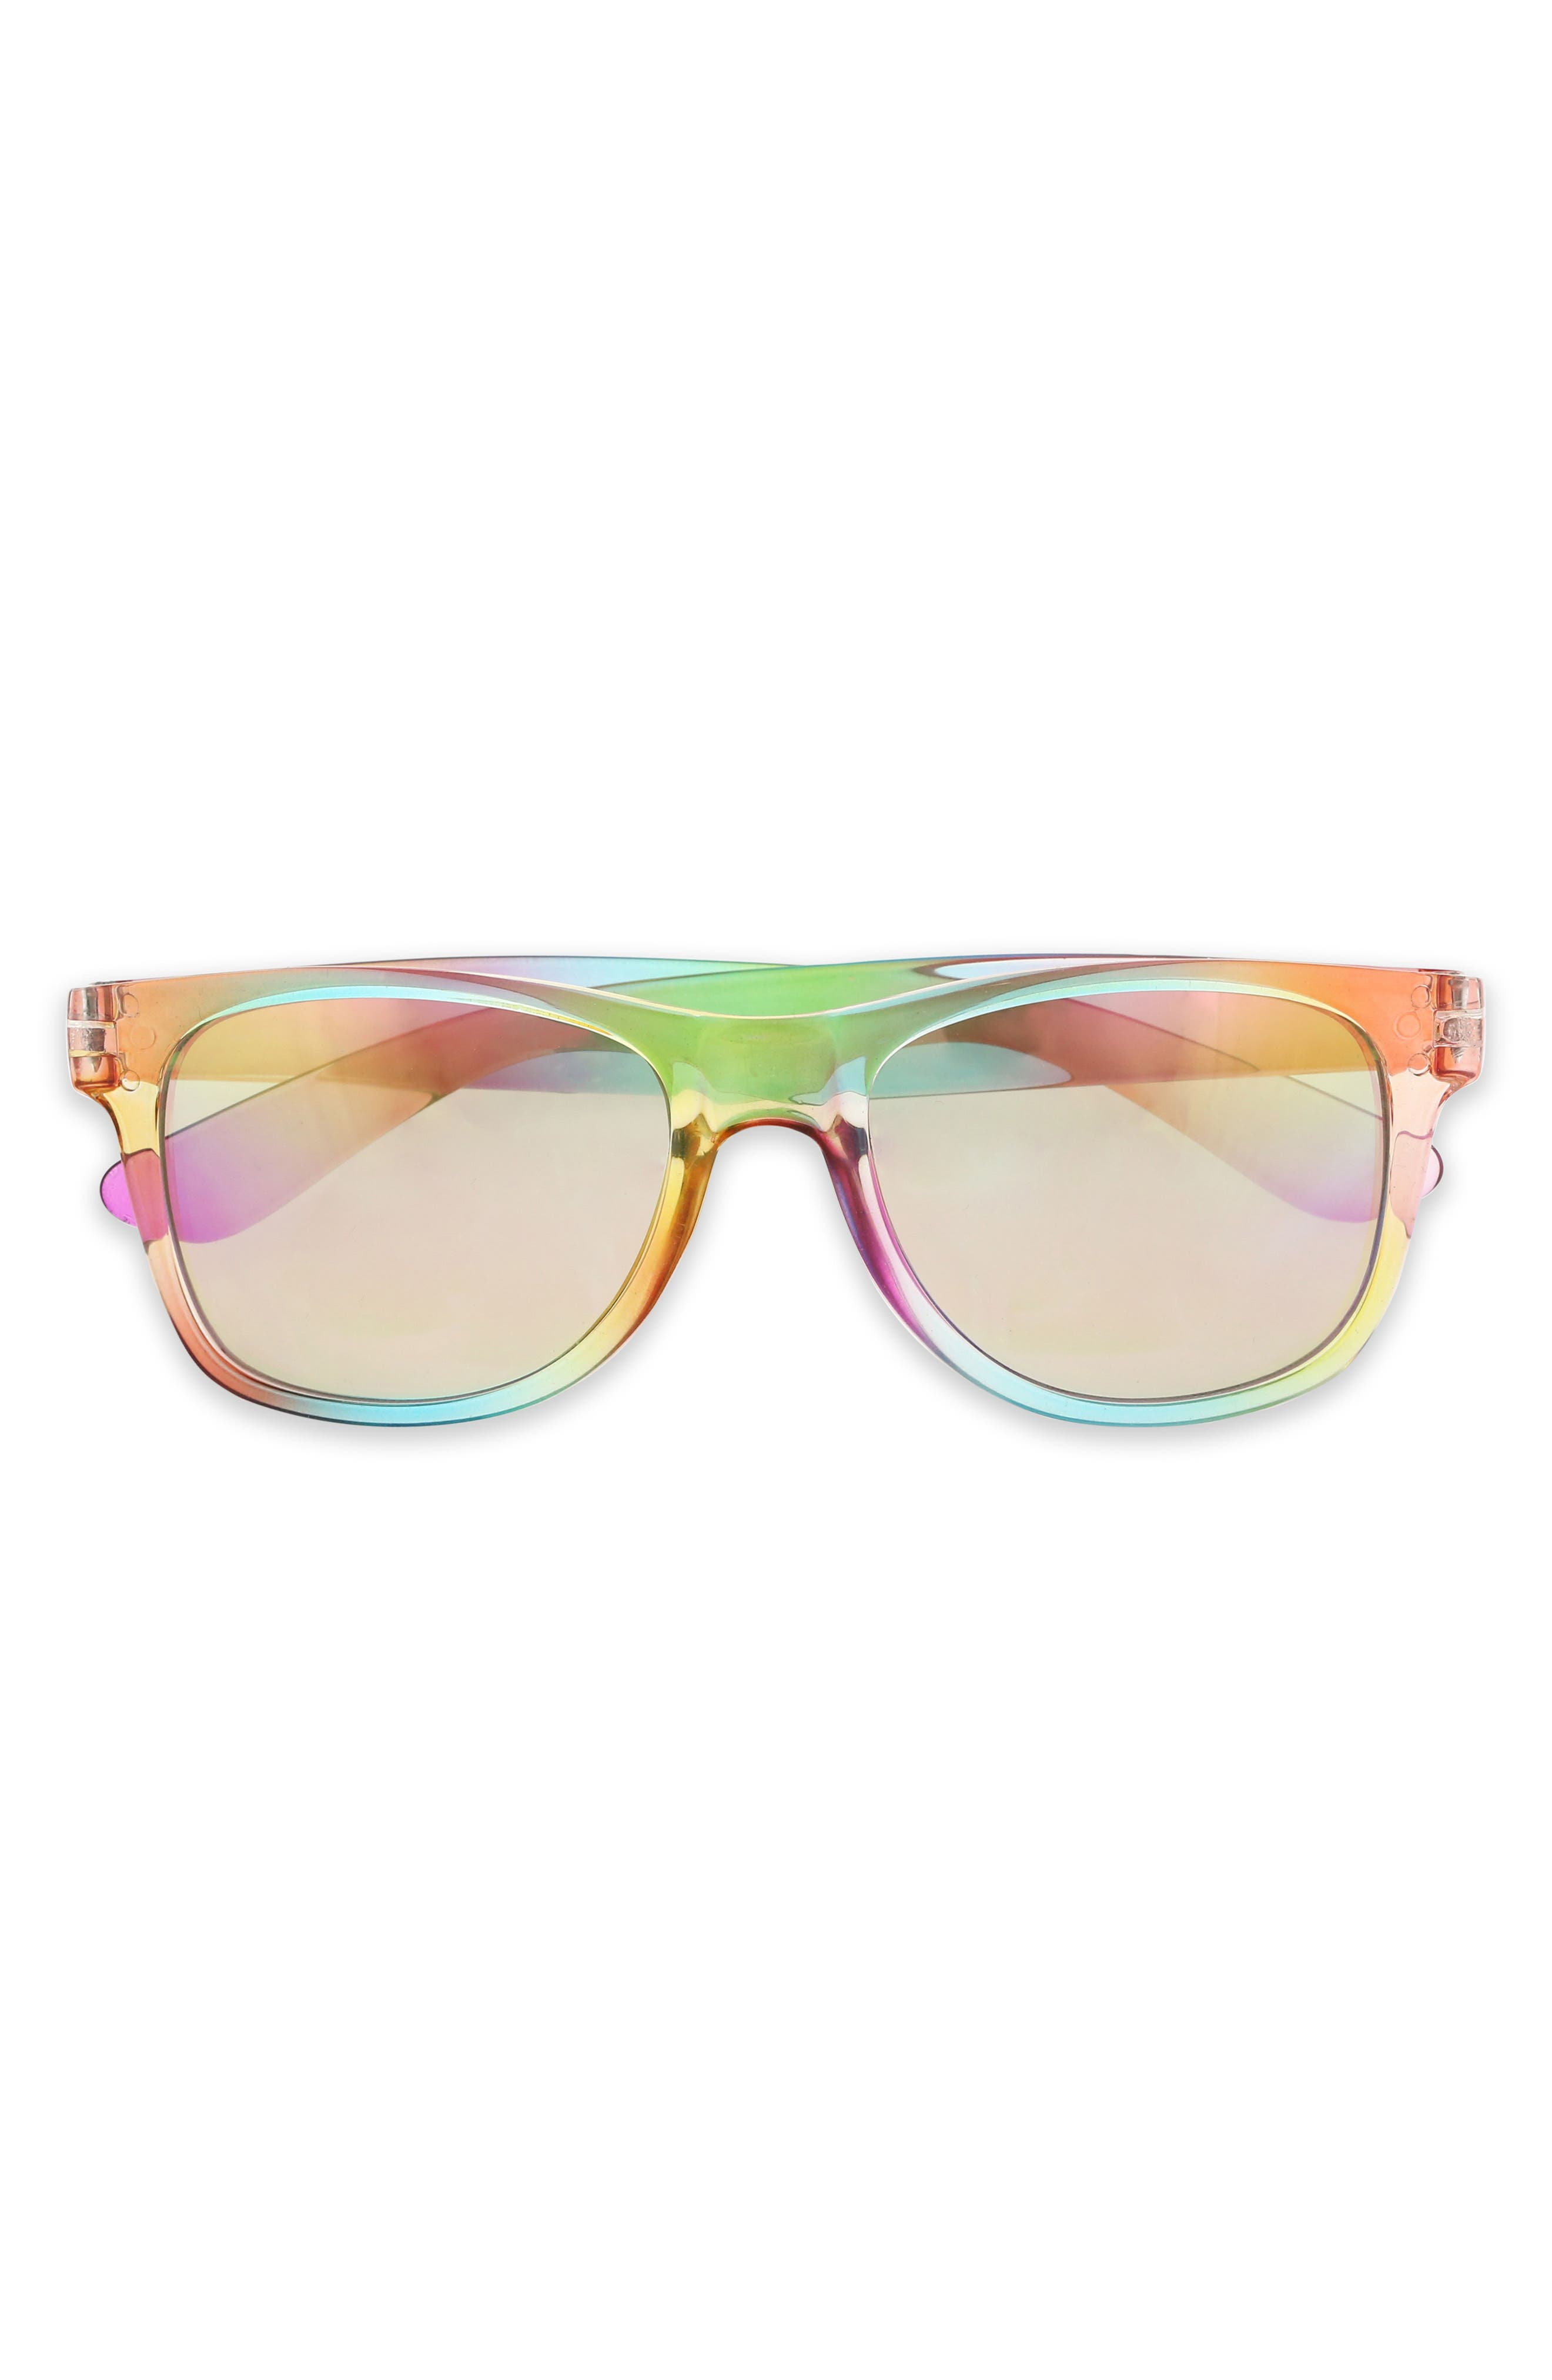 60mm Mirrored Sunglasses,                             Main thumbnail 1, color,                             Multi